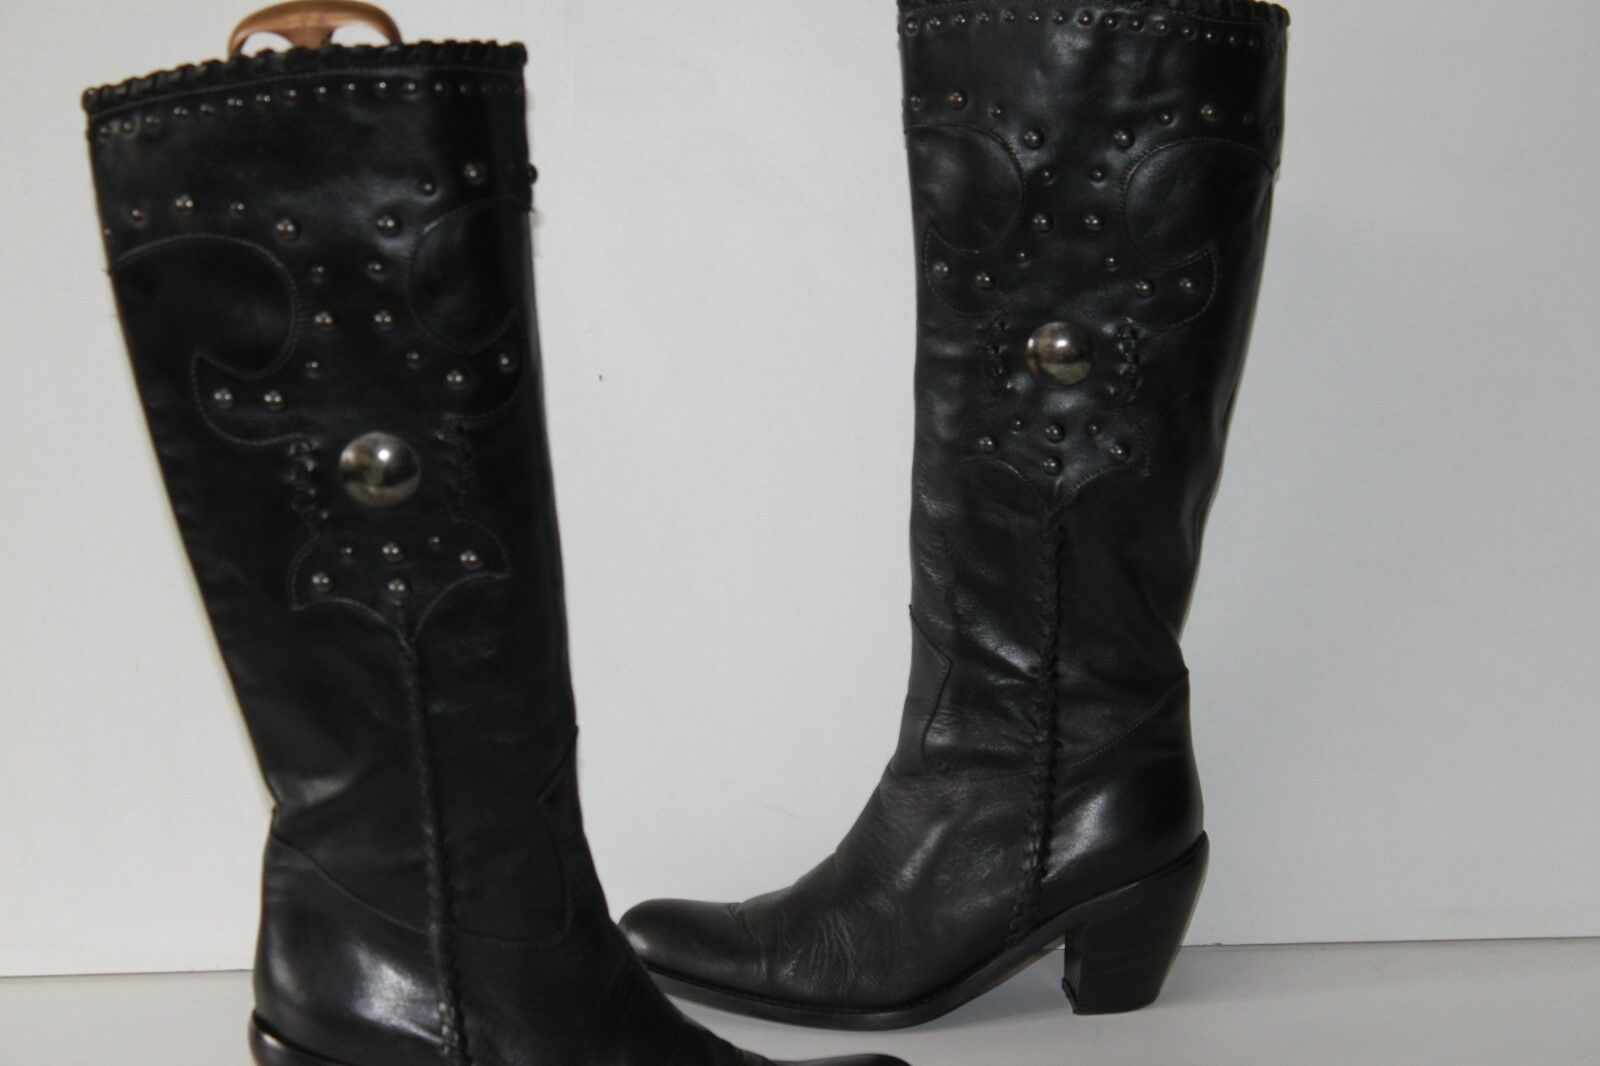 Heyraud riding boots leather lined black leather size 40 tbe